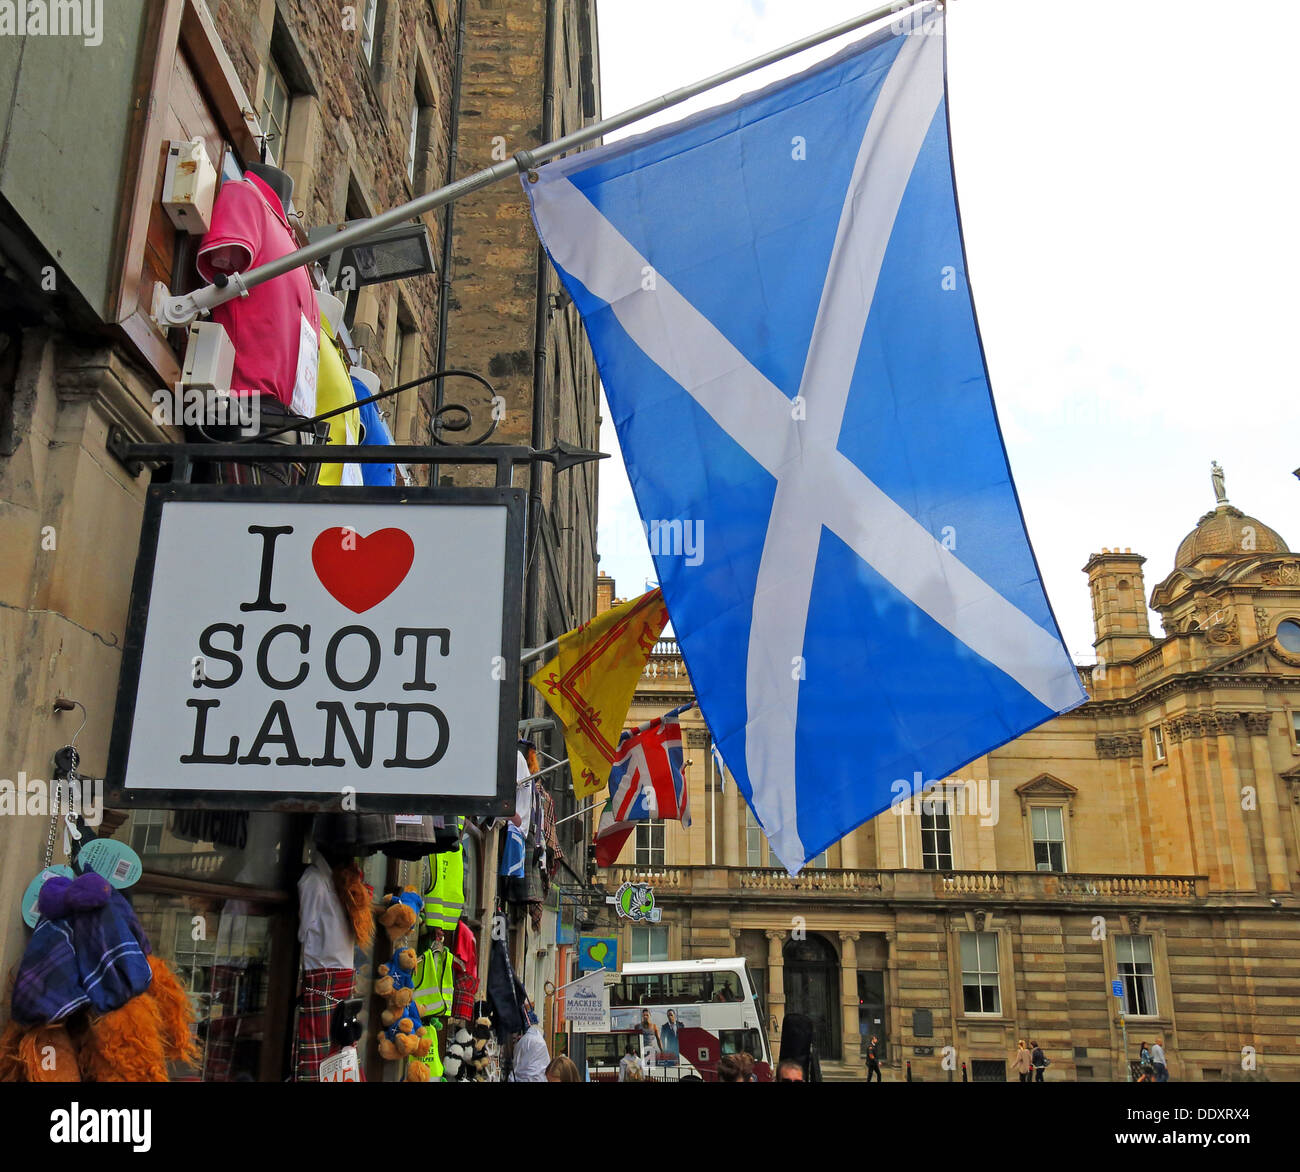 I love Scot Land shop Edinburgh Scotland UK with Scottish flag the saltire white cross on blue background - Stock Image